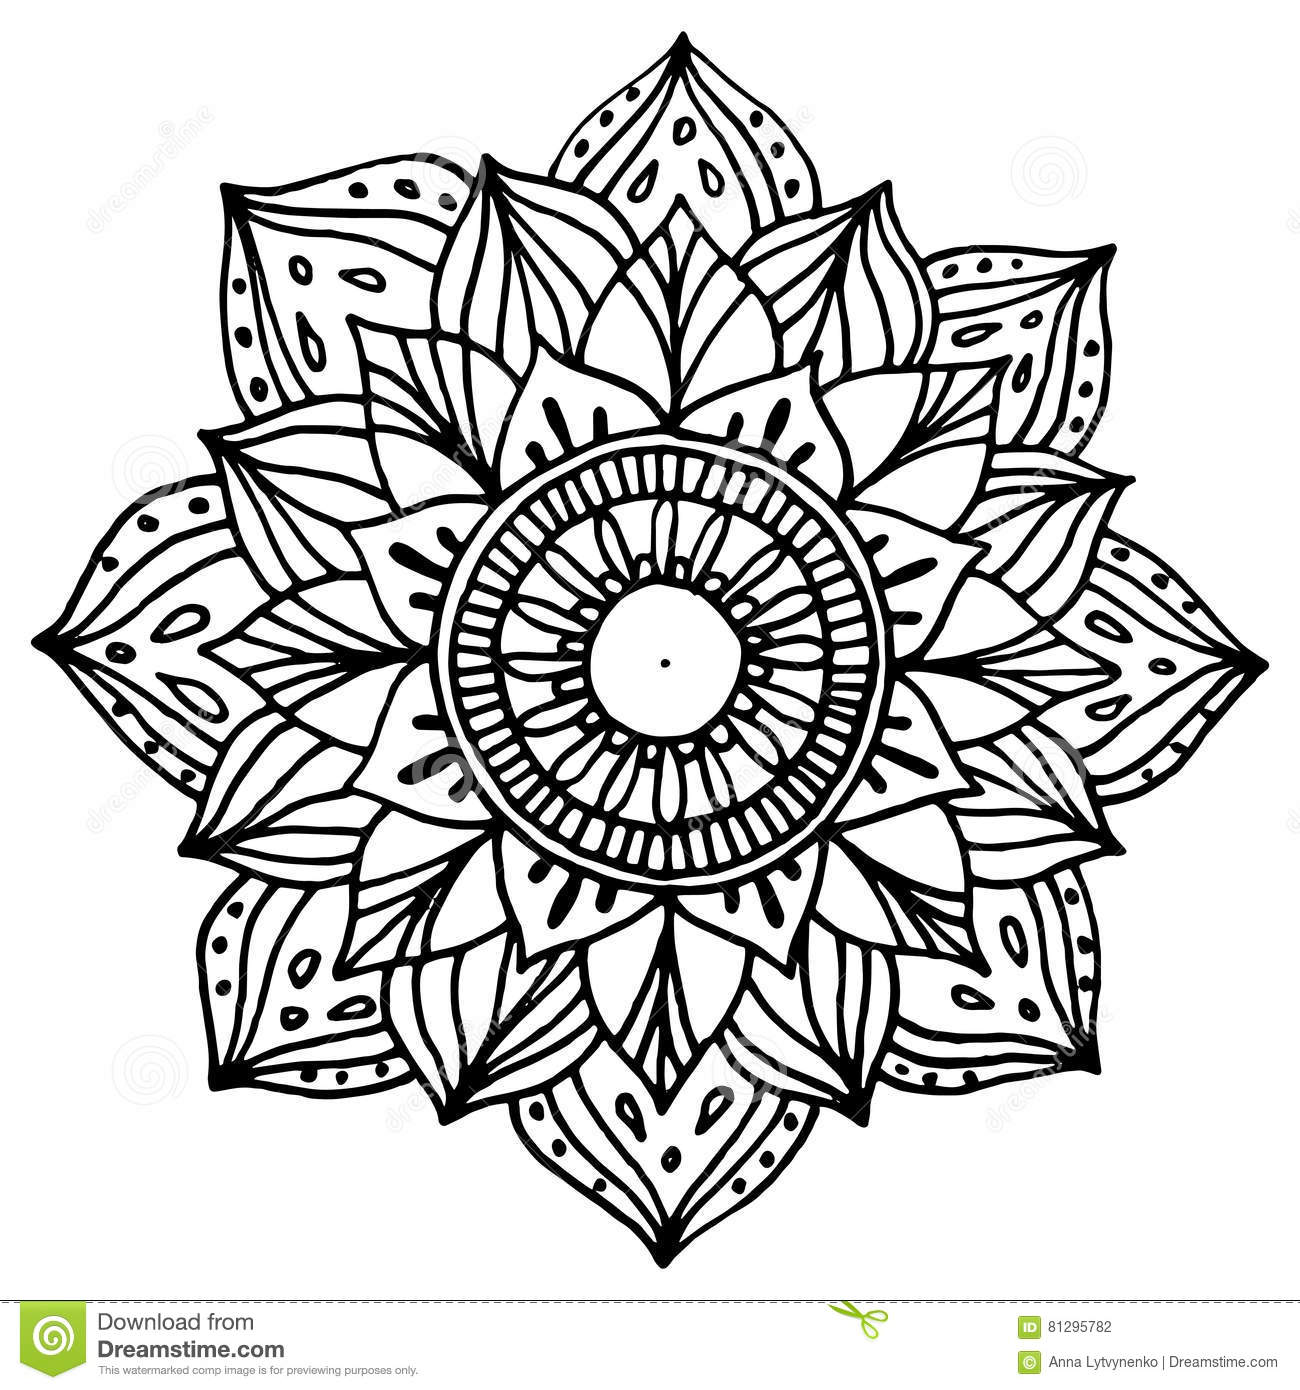 Zentangle Mandala For Coloring Book And Adults Made By Trace From Personal Hand Drawn Sketch Black White